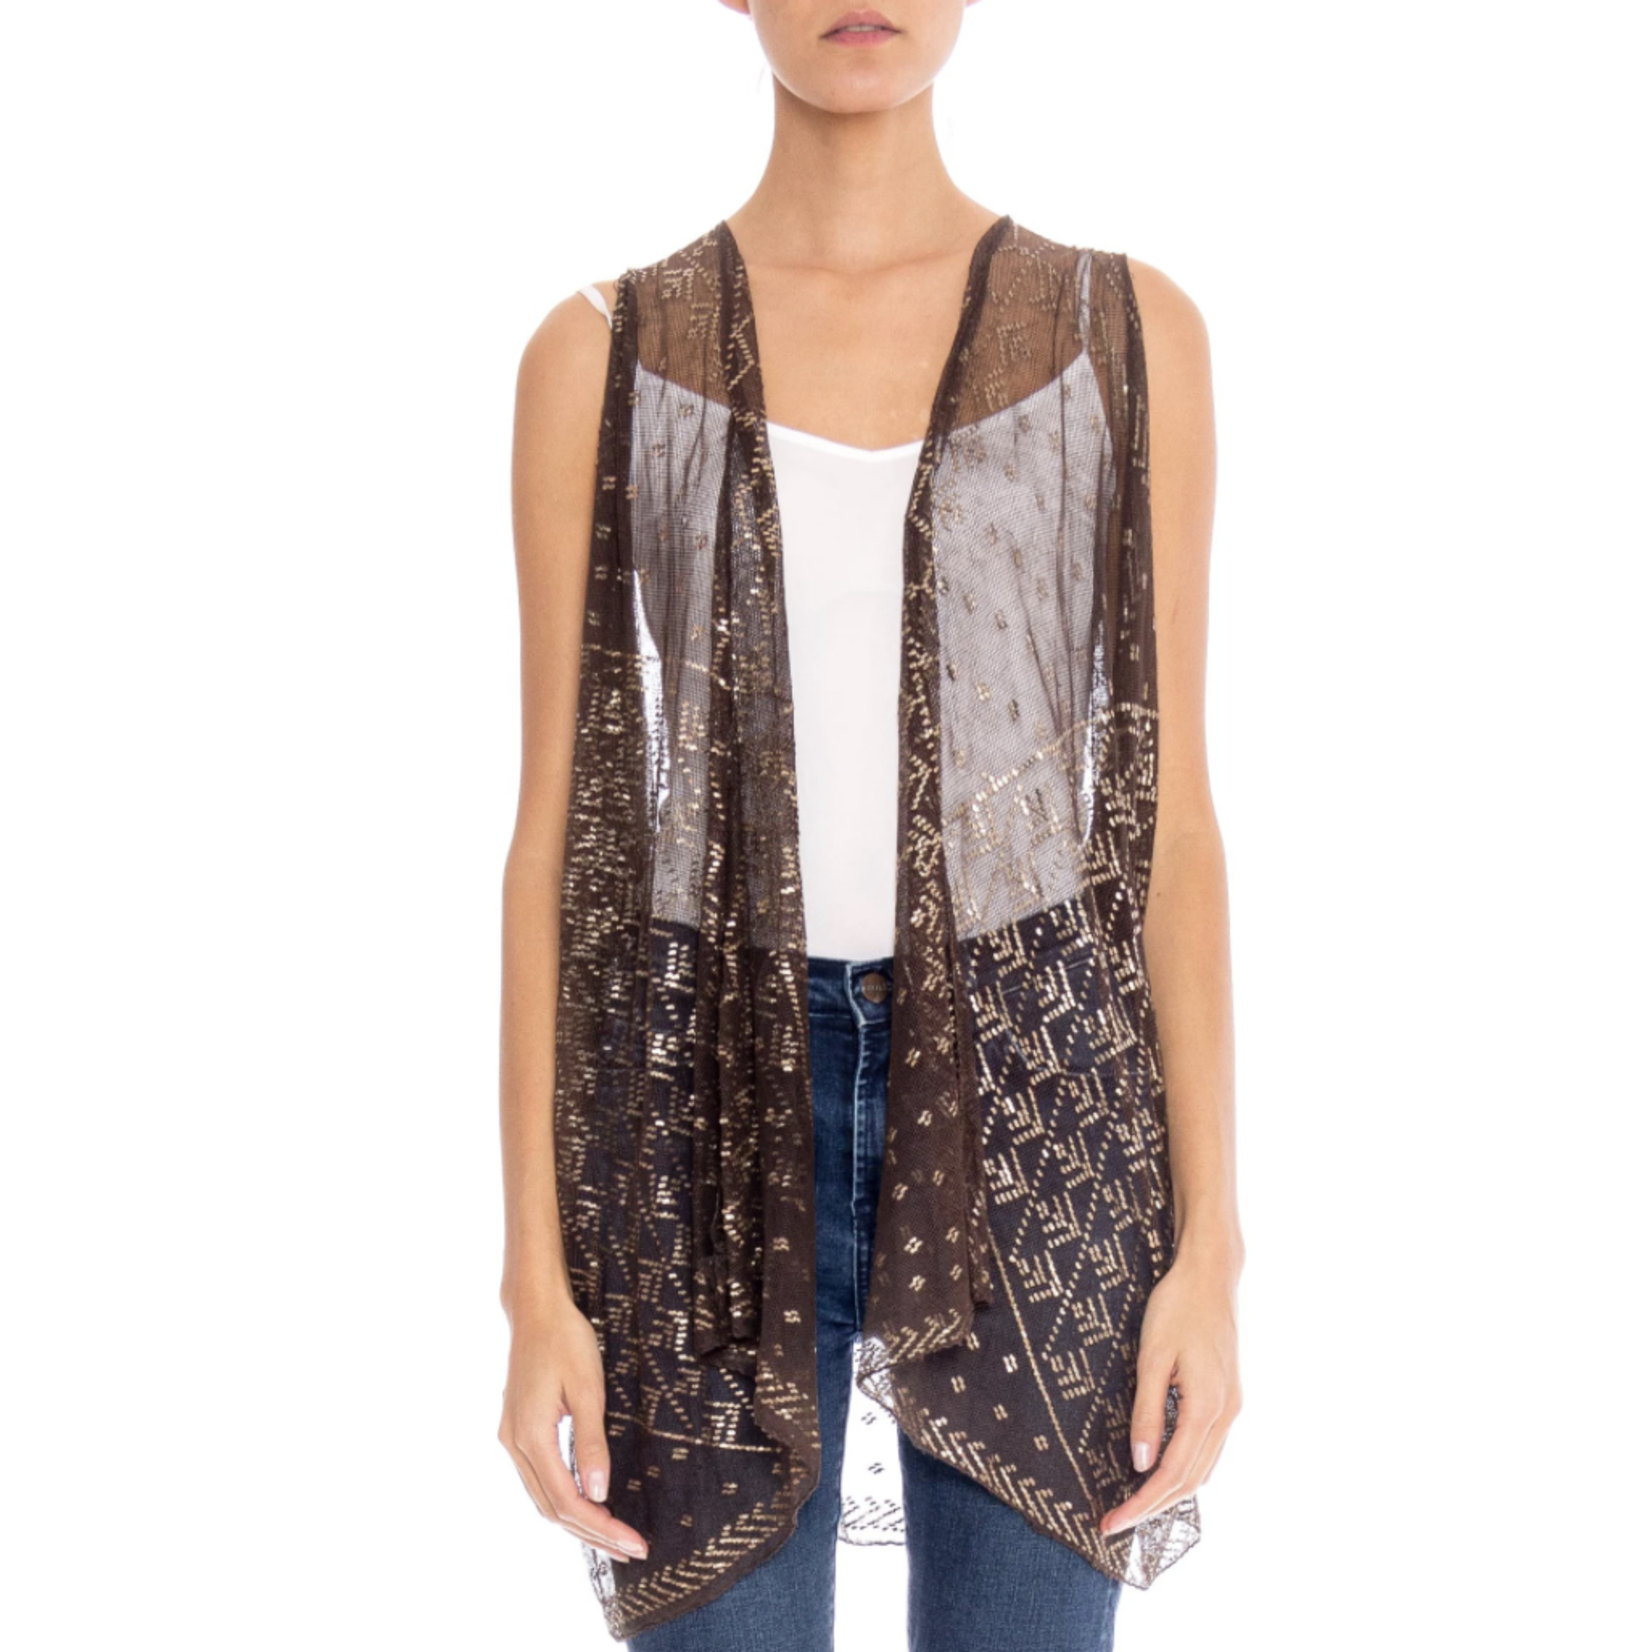 Morphew Chocolate Brown & Silver Egyptian Assuit Sheer Draped Vest